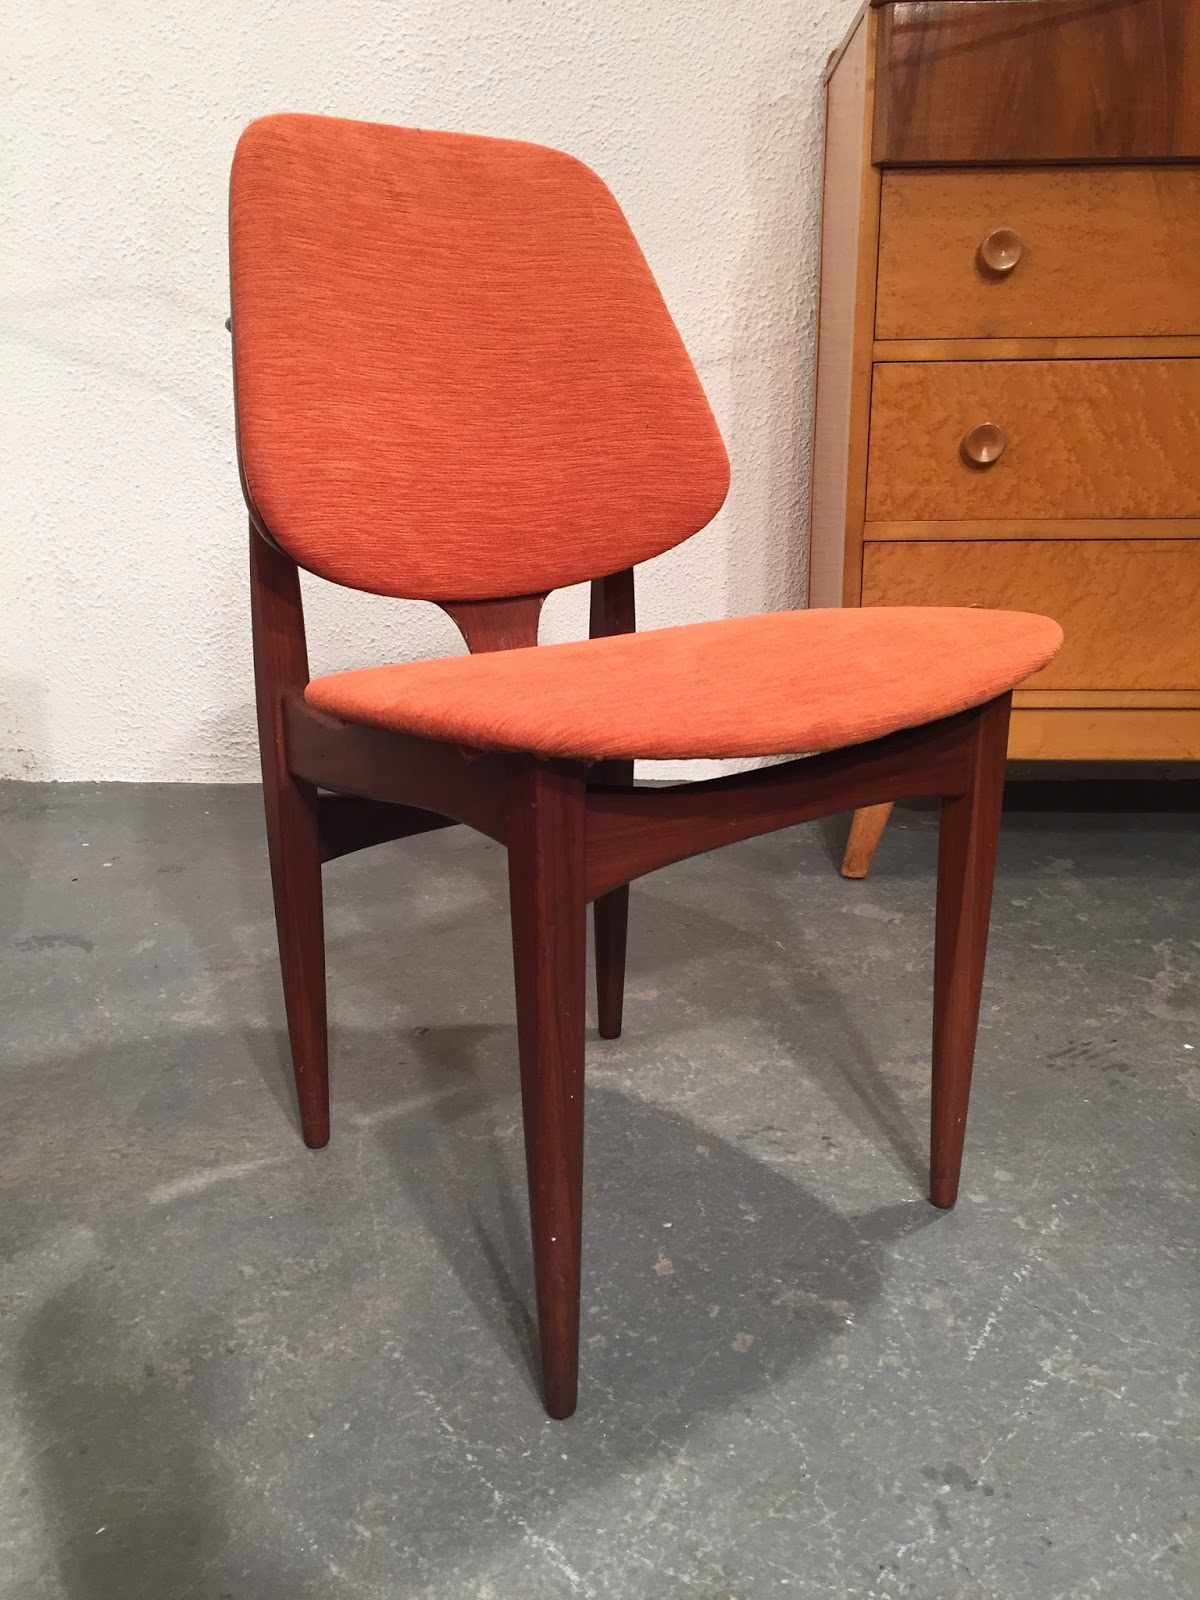 Retro Dining Chairs Ireland How To Make A Princess Chair Ocd Vintage Furniture